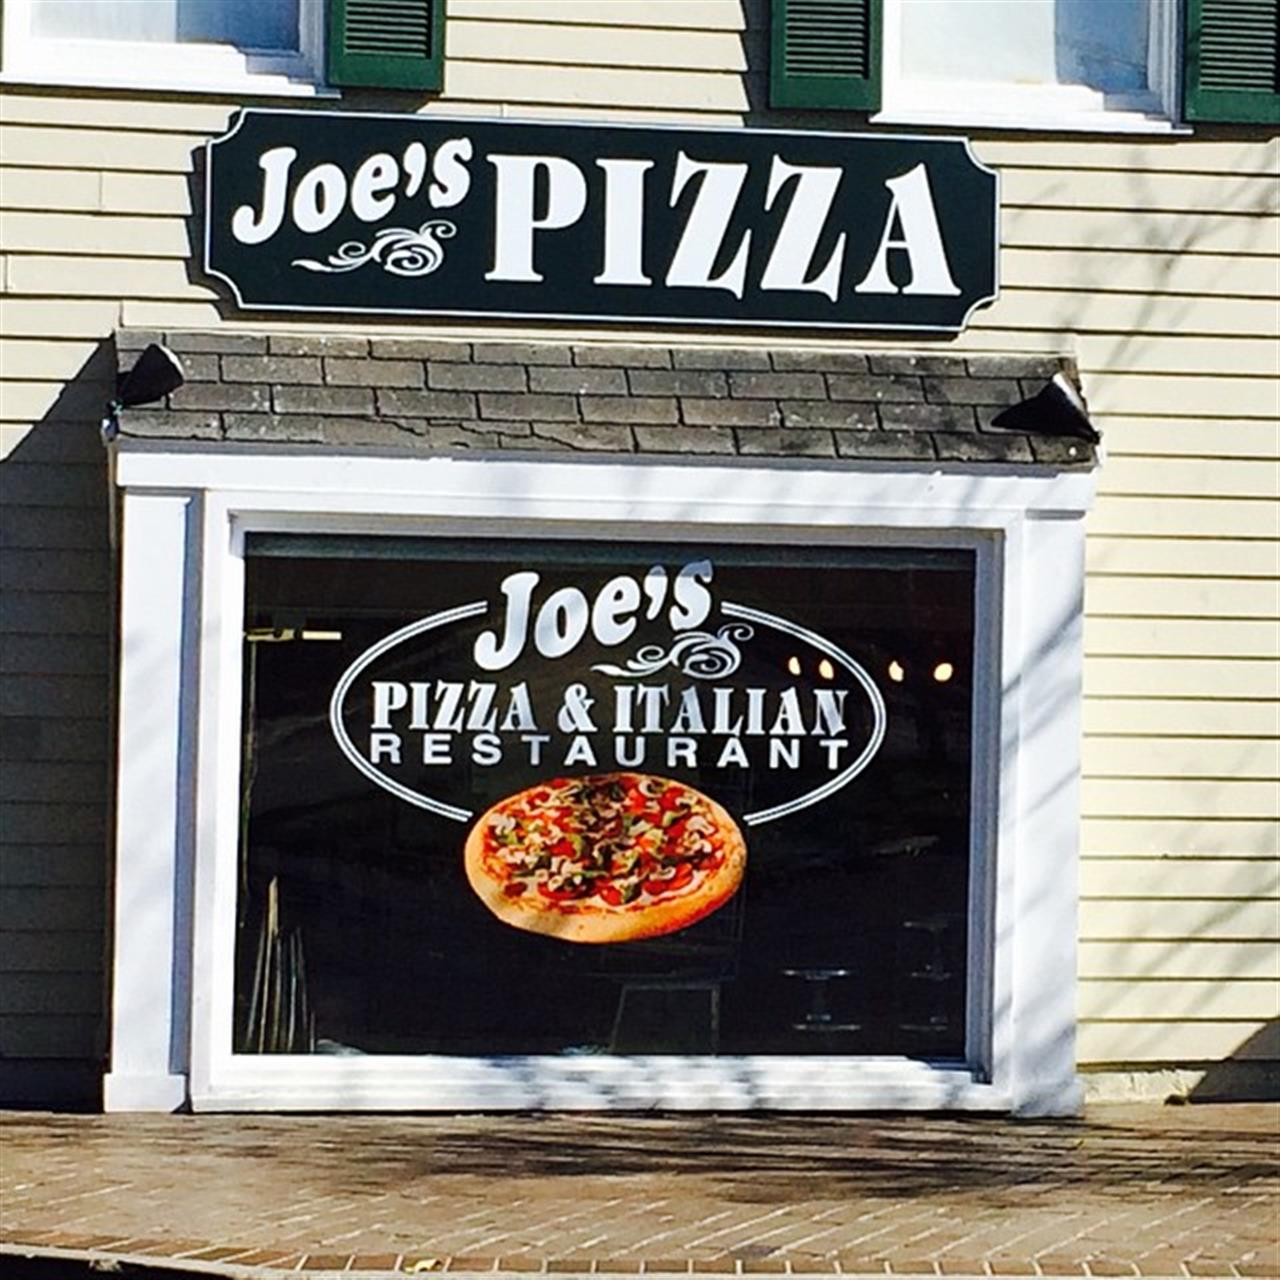 Excellent catering at #JoesPizzaWestportCT ! #catering  #parties #halloween #food #fun #happy #ctresraurantweek #LeadingRELocal